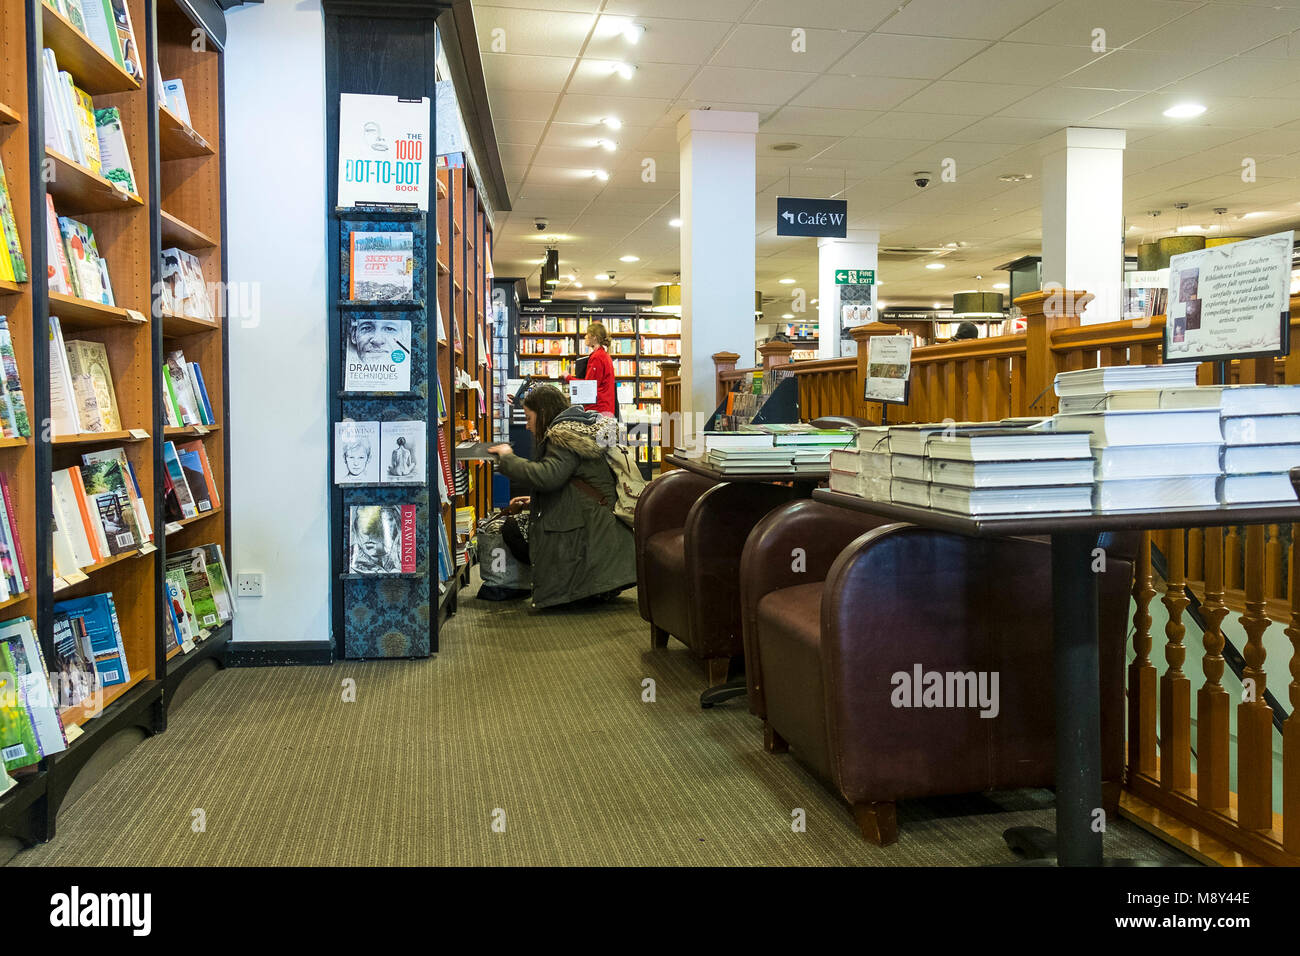 The interior of a Waterstones Bookshop in Truro Cornwall. - Stock Image